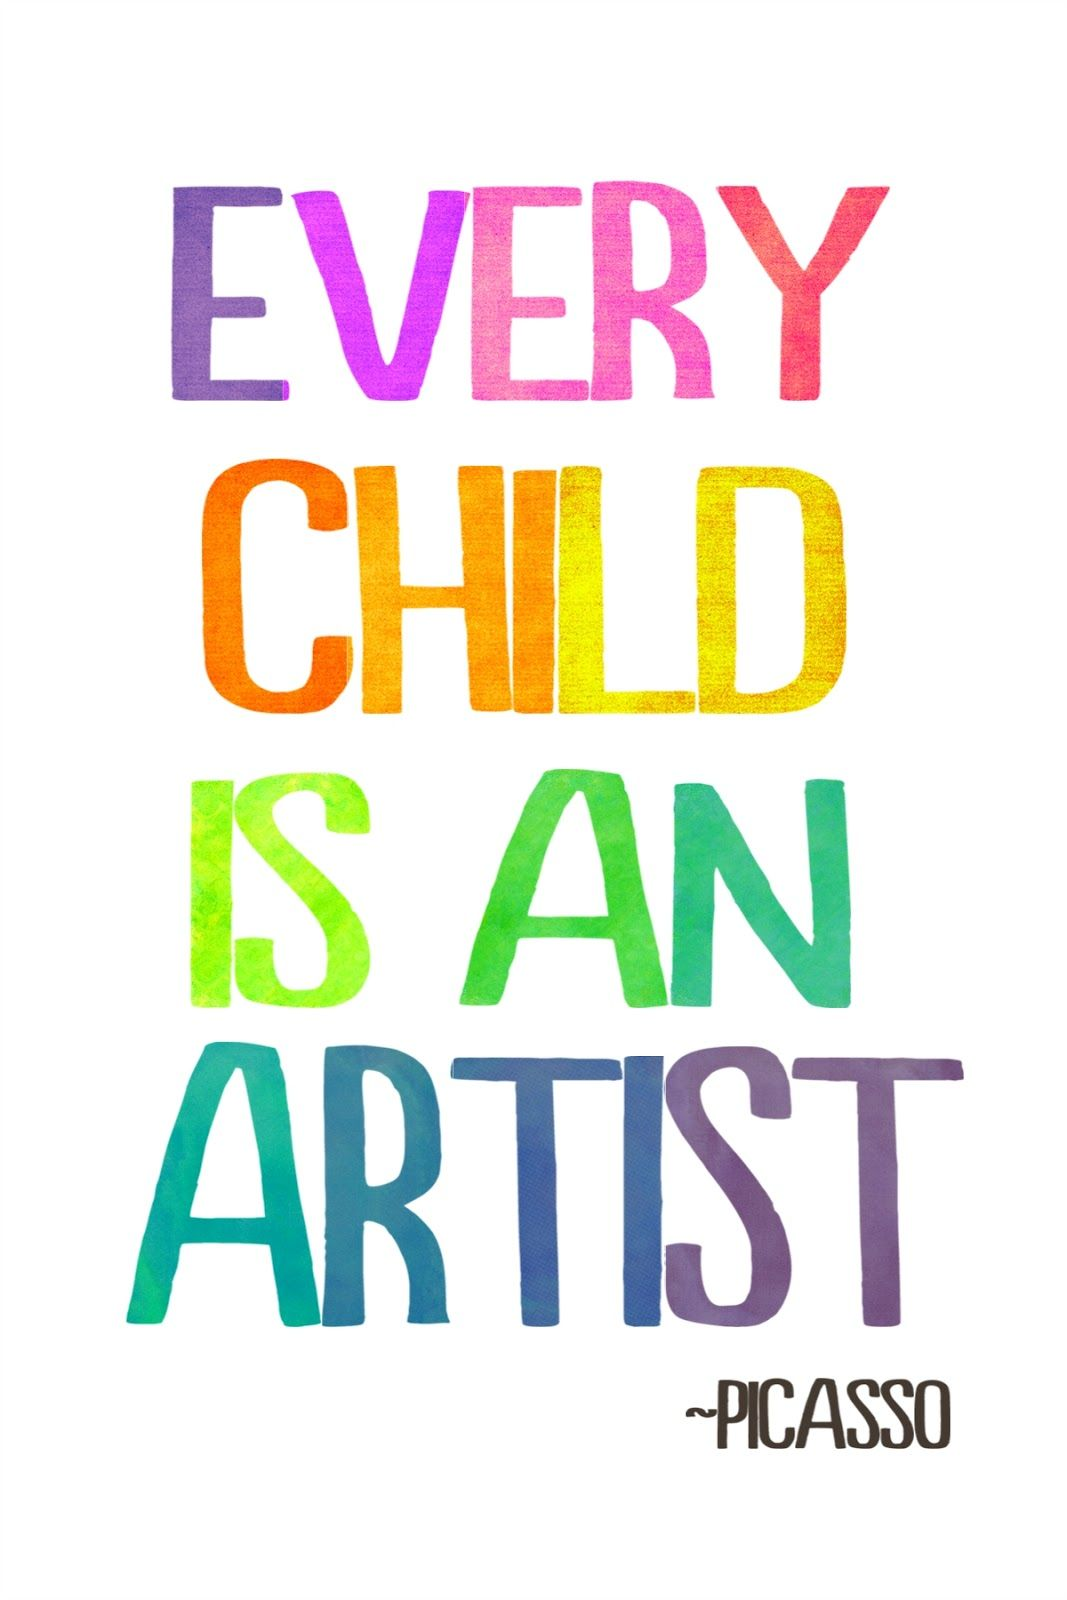 Very True I Save Every Single Piece Of My Kids Artwork It Will Be